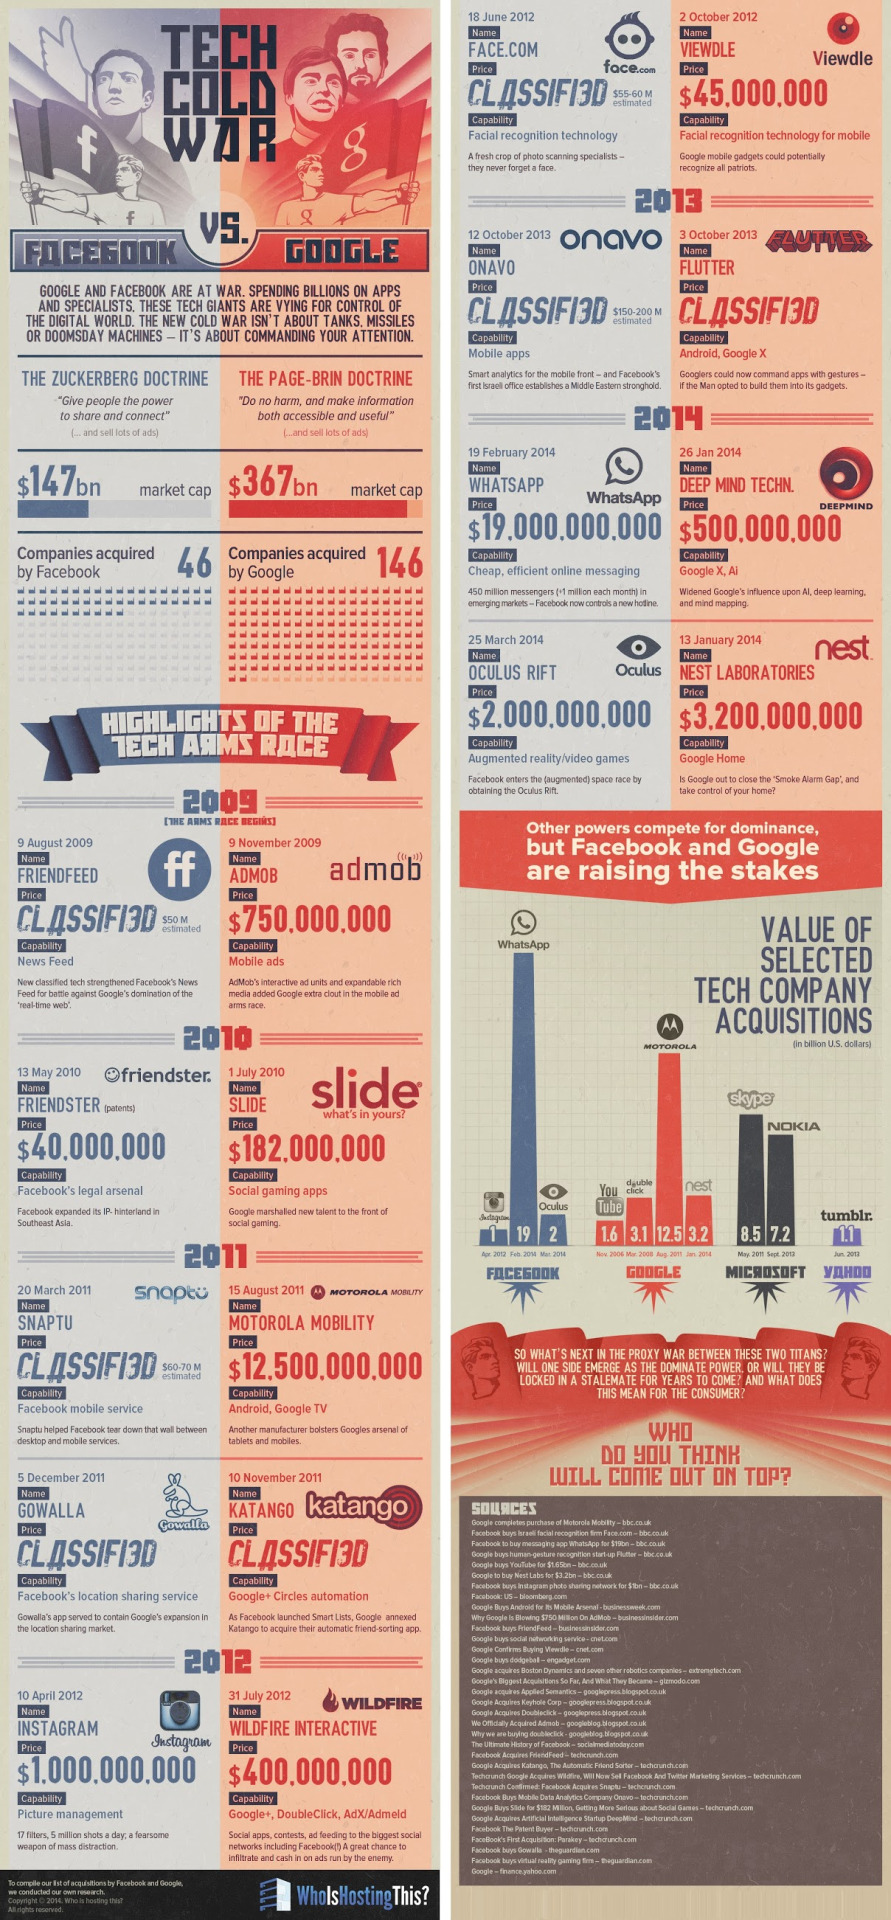 """Tech Cold War: Facebook vs. Google - infographic To enlarge image: i.imgur.com/3o3eZsk.jpg """"Who is winning the tech cold war? Spending billions on apps and specialists, these tech giants are vying for control of the digital world. The new cold war isn't about tanks, missiles or doomsday machines — it's about commanding your attention (and maybe the stratosphere). There is always speculation and rumors of upcoming acquisitions for these two companies, but both have their own strategies for growth. Google is focusing on foreign investments, while Facebook path seems pointed towards becoming a media platform."""" Take a look at this infographic from whoishostingthis team that presents the timeline comparison between Google and Facebook acquisitions. Pin it: http://www.pinterest.com/pin/381539399654501455/ Source:http://www.whoishostingthis.com/blog/2014/05/27/tech-cold-war-facebook-vs-google/ #Google  #technology  #facebook http://click-to-read-mo.re/p/7qzc/53413f12"""